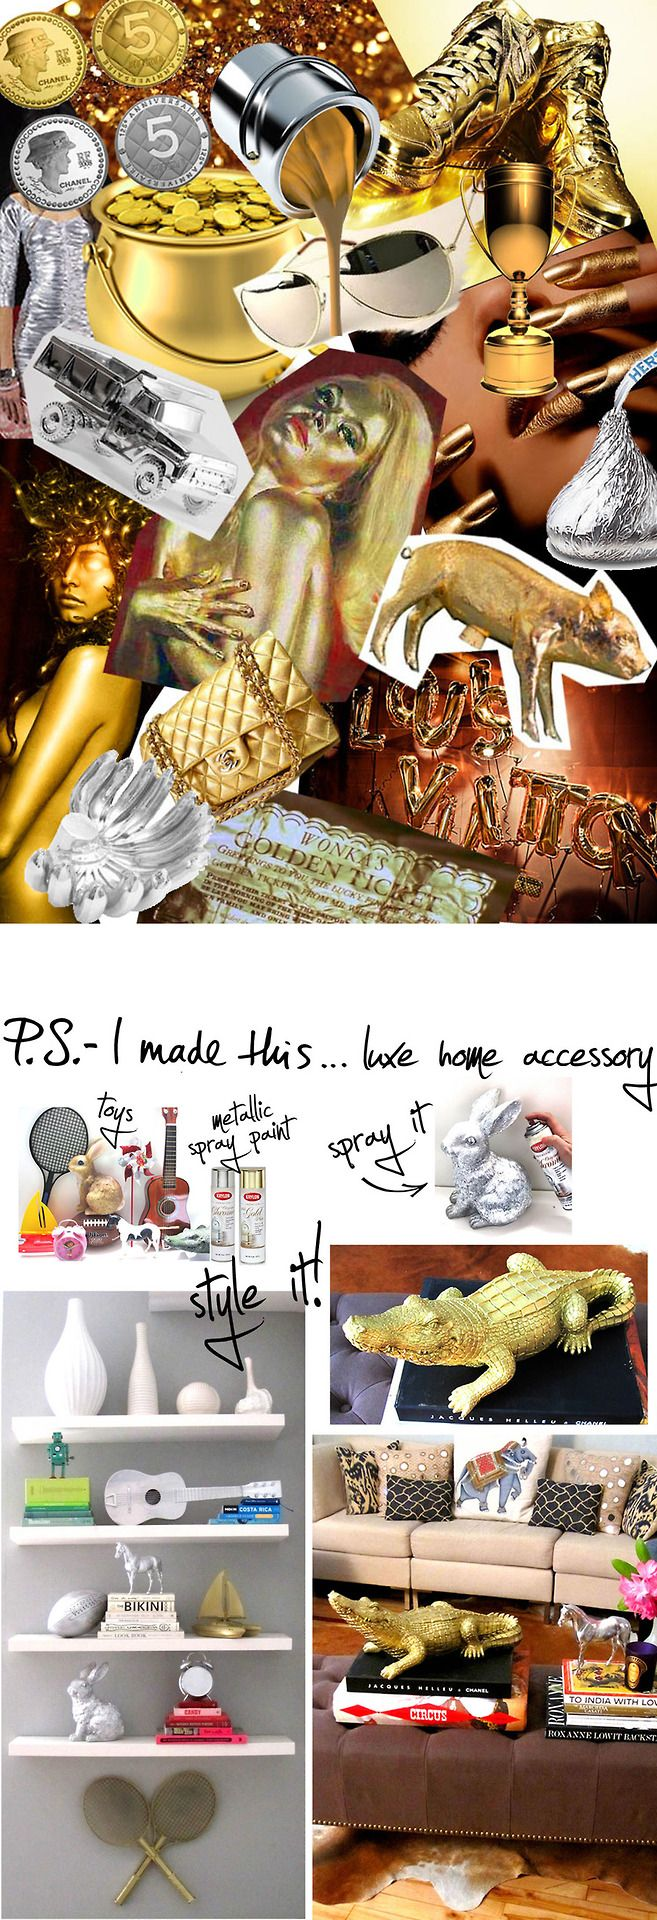 Luxe Home Accessory « P.S. – I Made This…